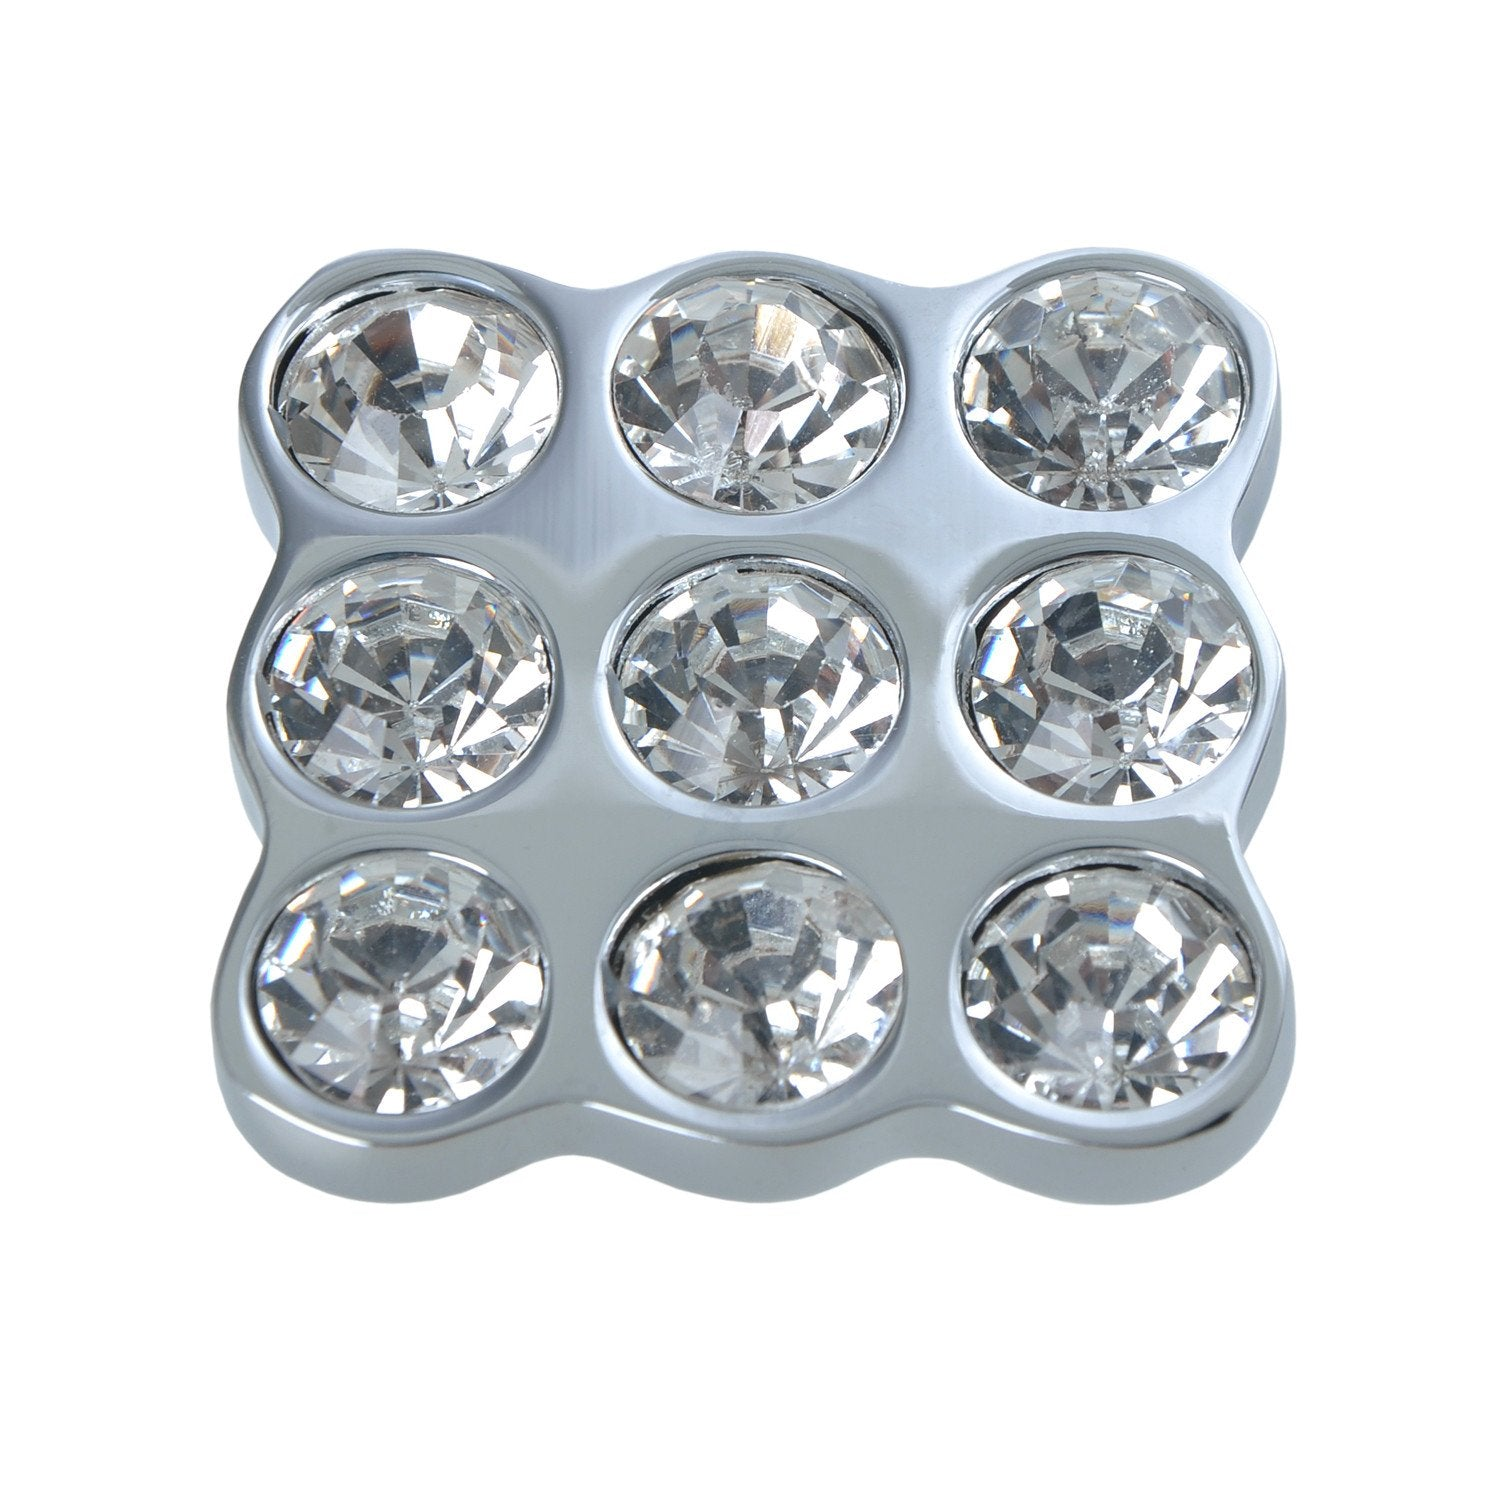 "Gleam Polished Chrome, 9 Crystal Cabinet Knob 1.5"" - Loft97 - 1"